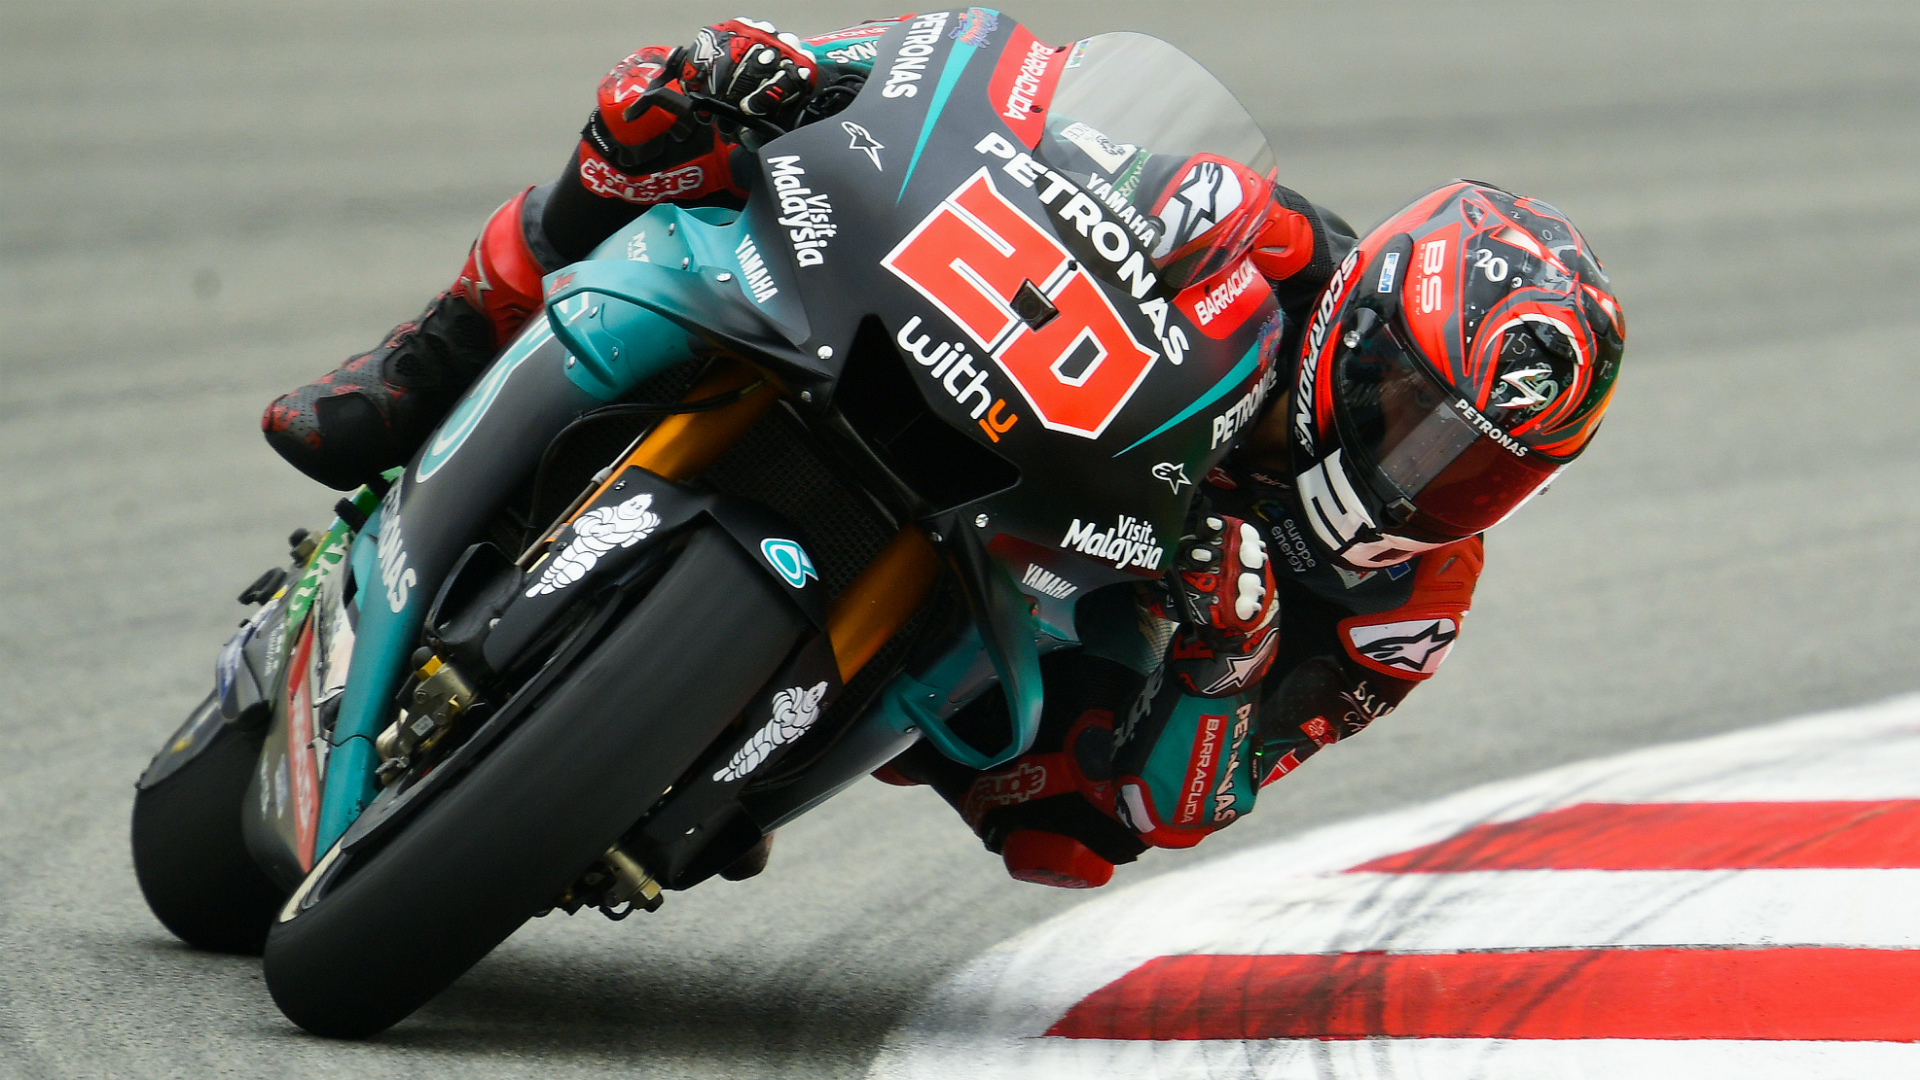 Quartararo makes fast start in Catalunya